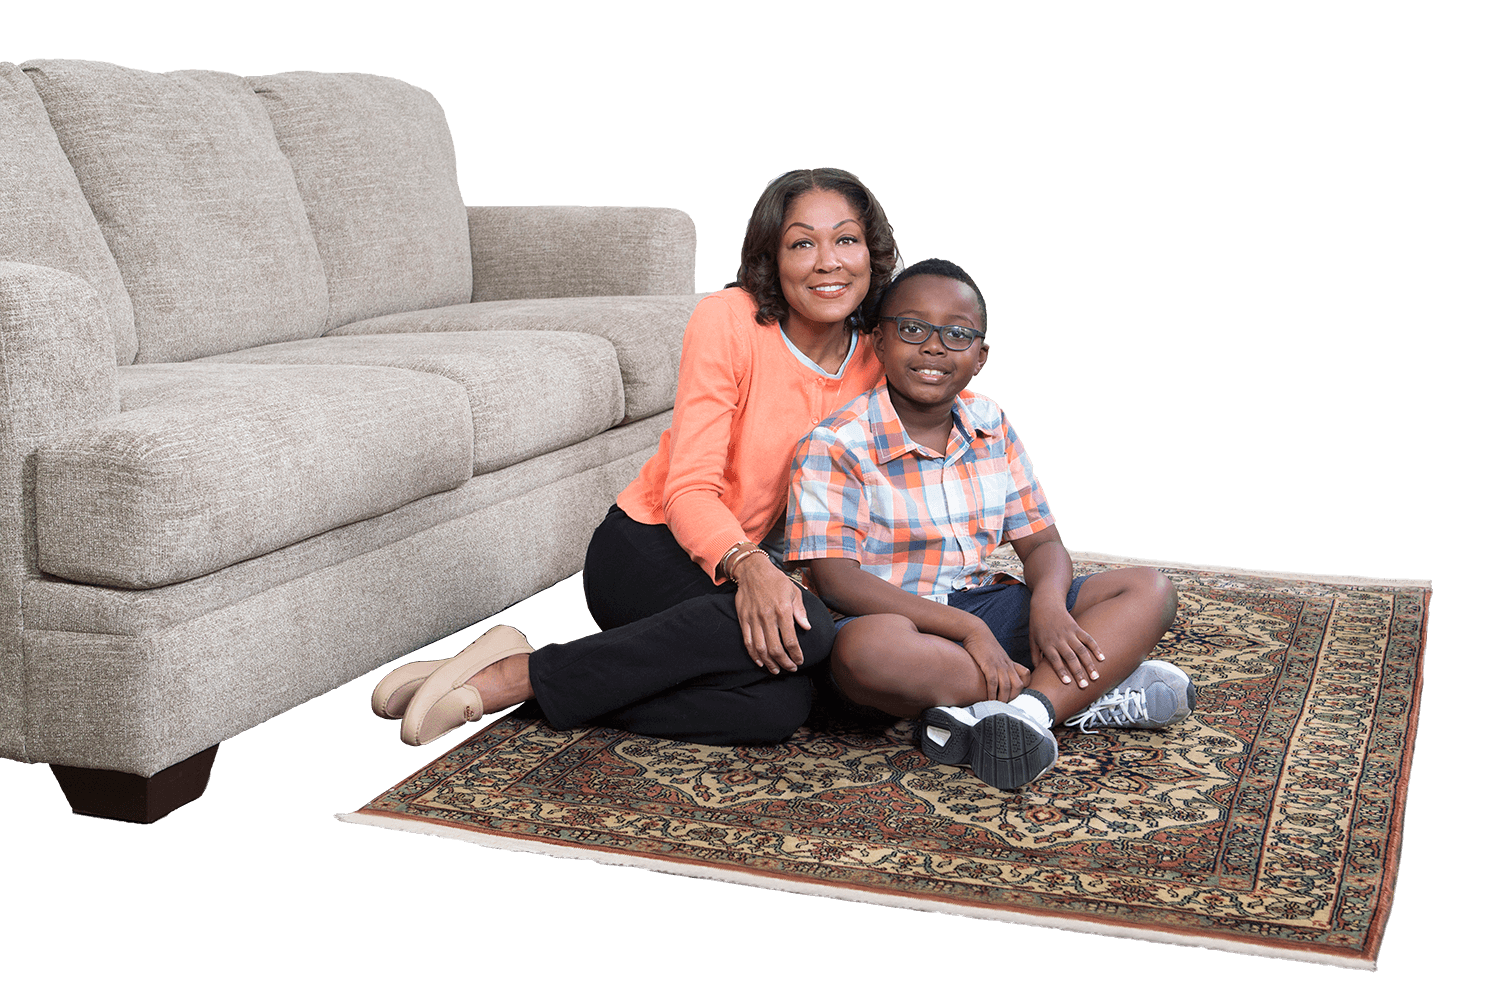 mother and child sitting on clean area rug